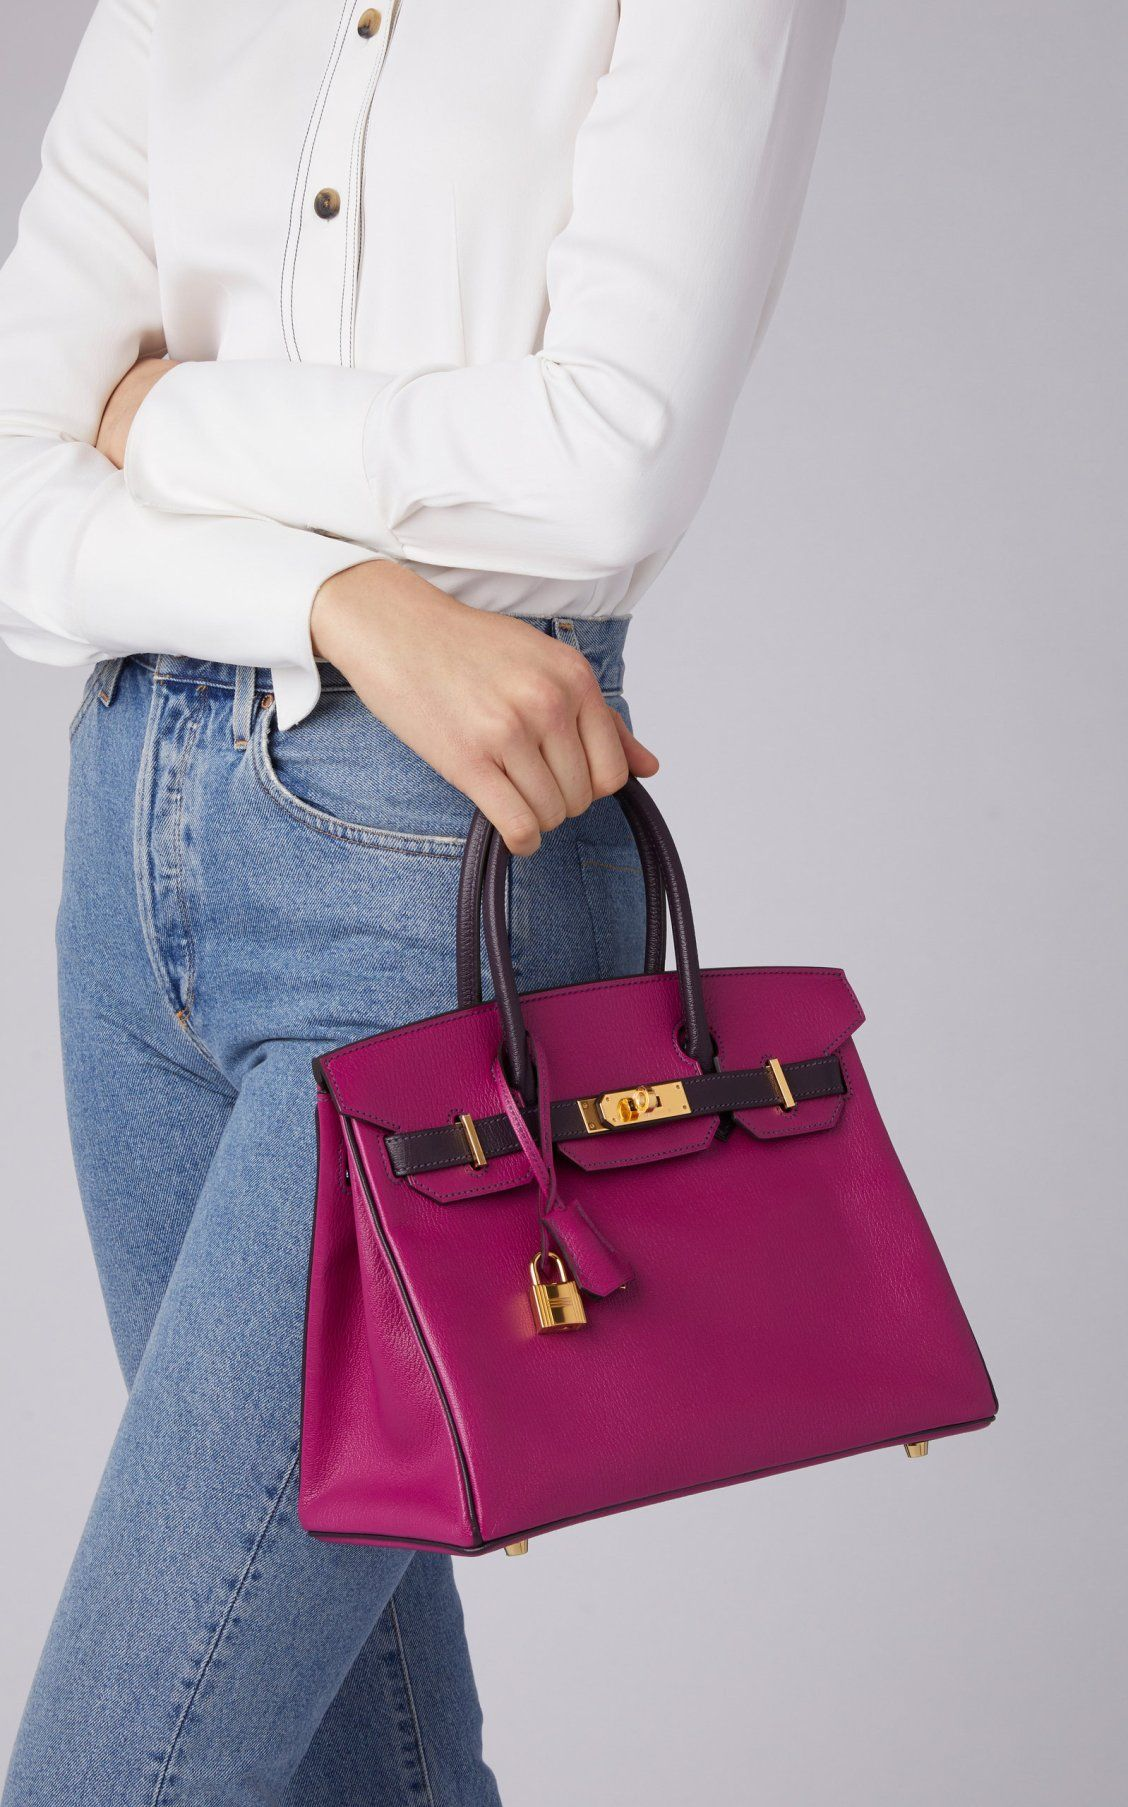 4cf31e3106 Hermès 30cm Rose Pourpre and Raisin Chevre Leather Special Order Horseshoe  Birkin by Hermès Vintage by Heritage Auctions